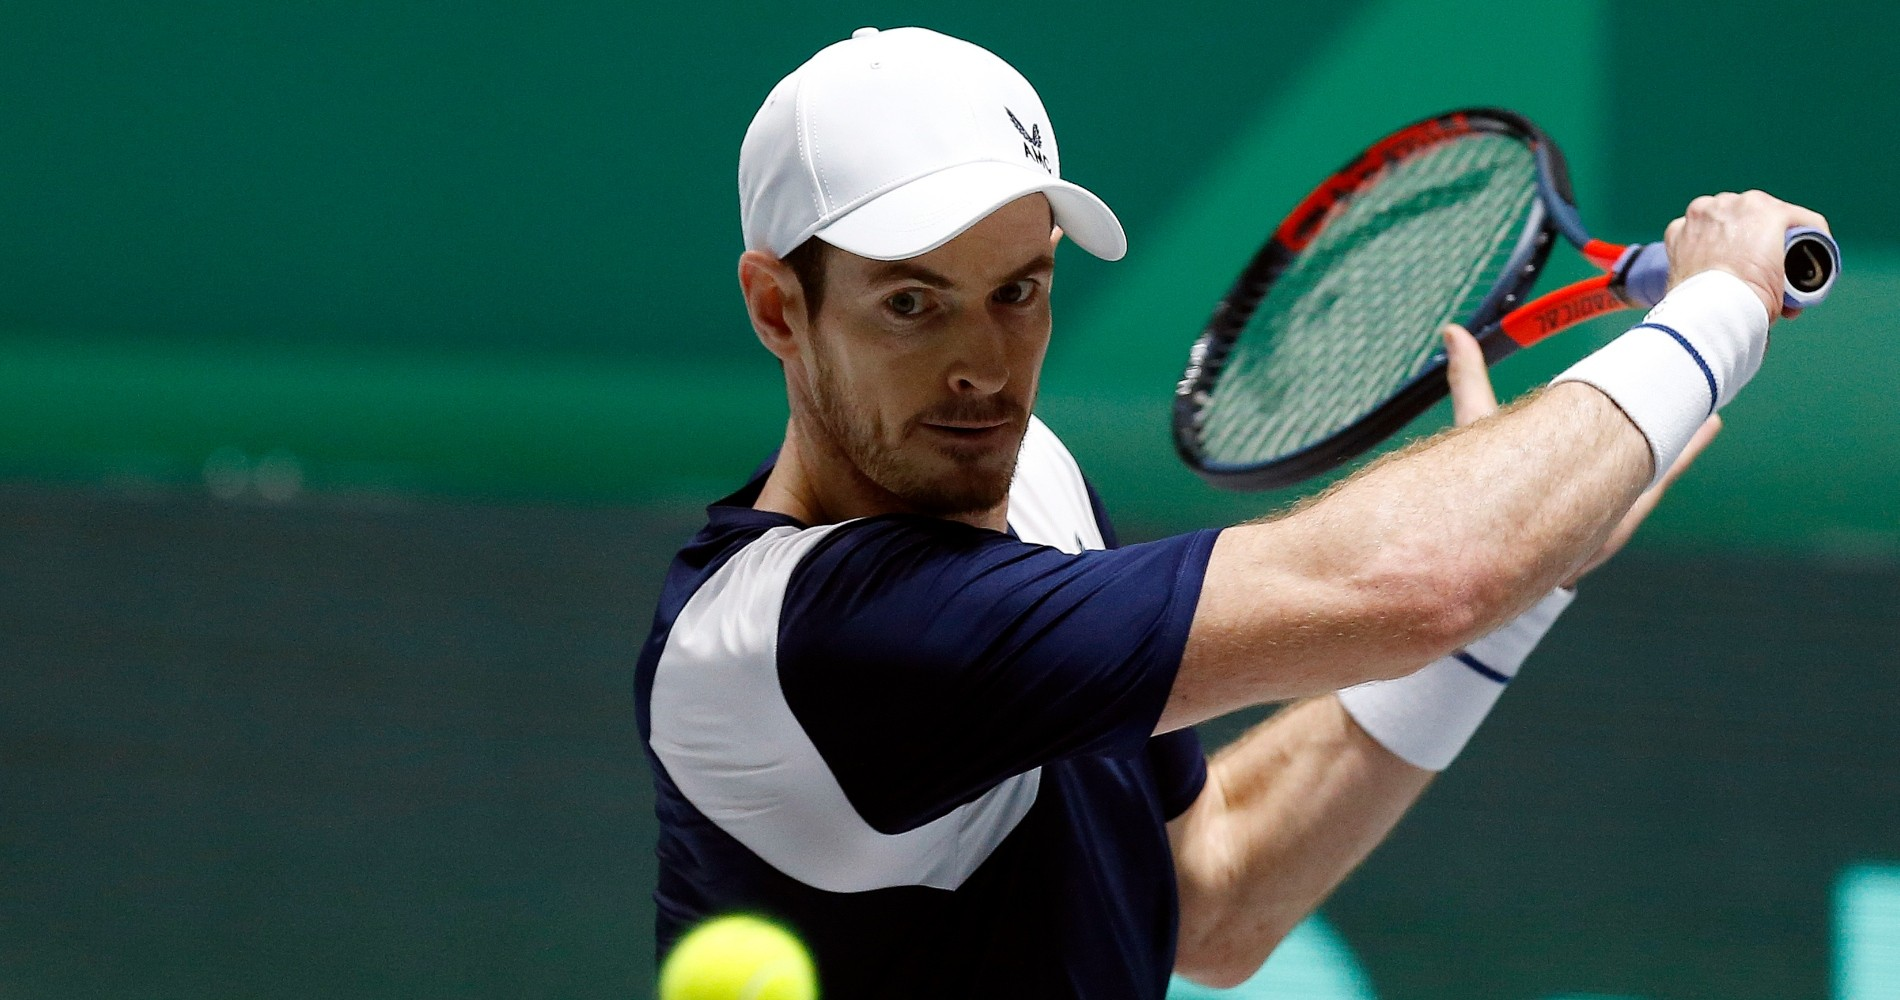 Andy Murray (Great Britain), 2019 Davis Cup